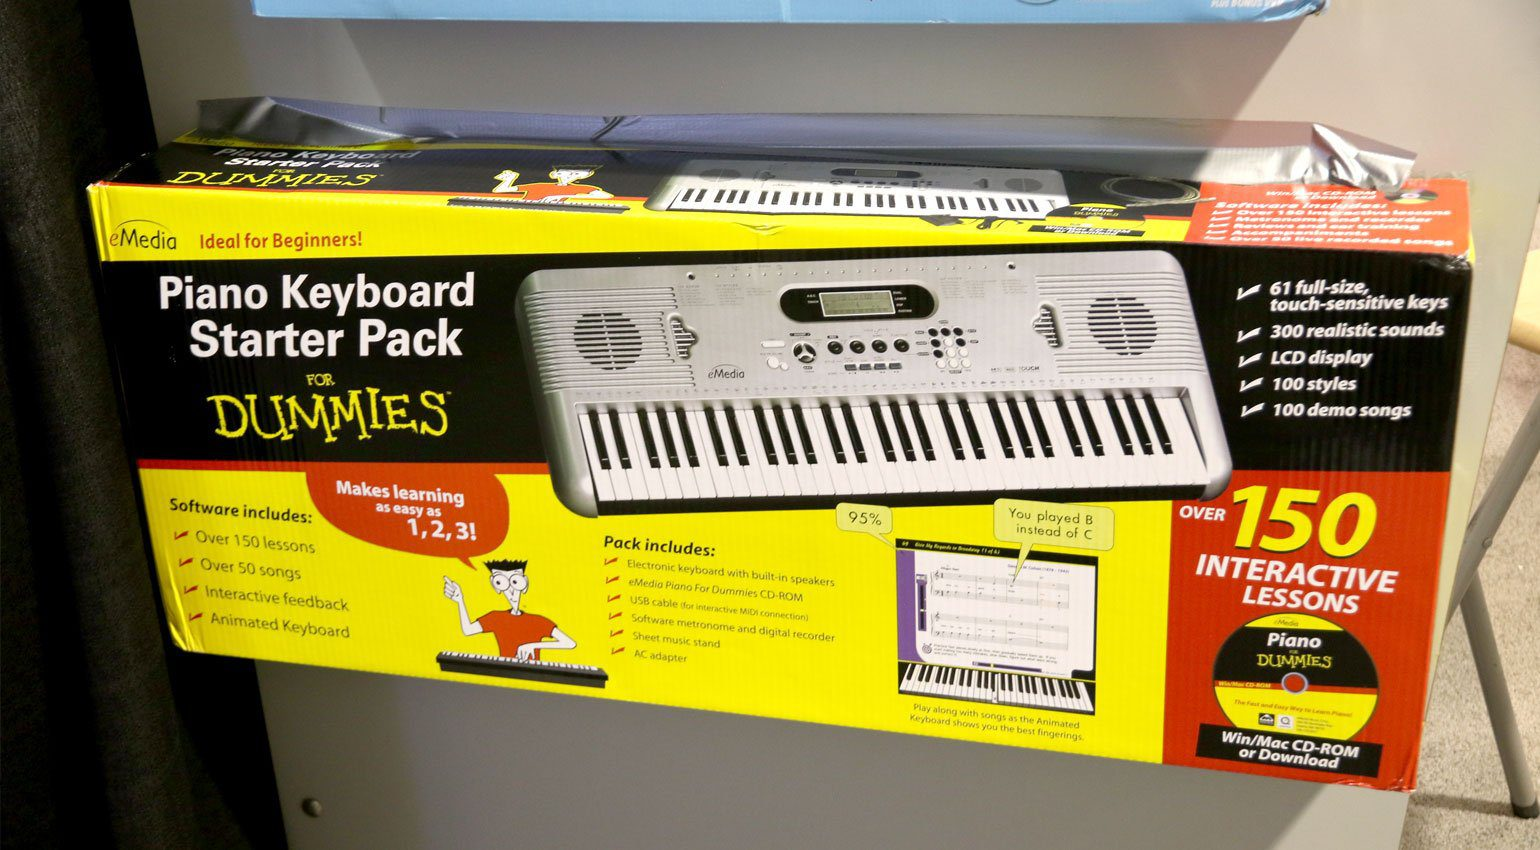 NAMM 2019: Keyboard for Dummies